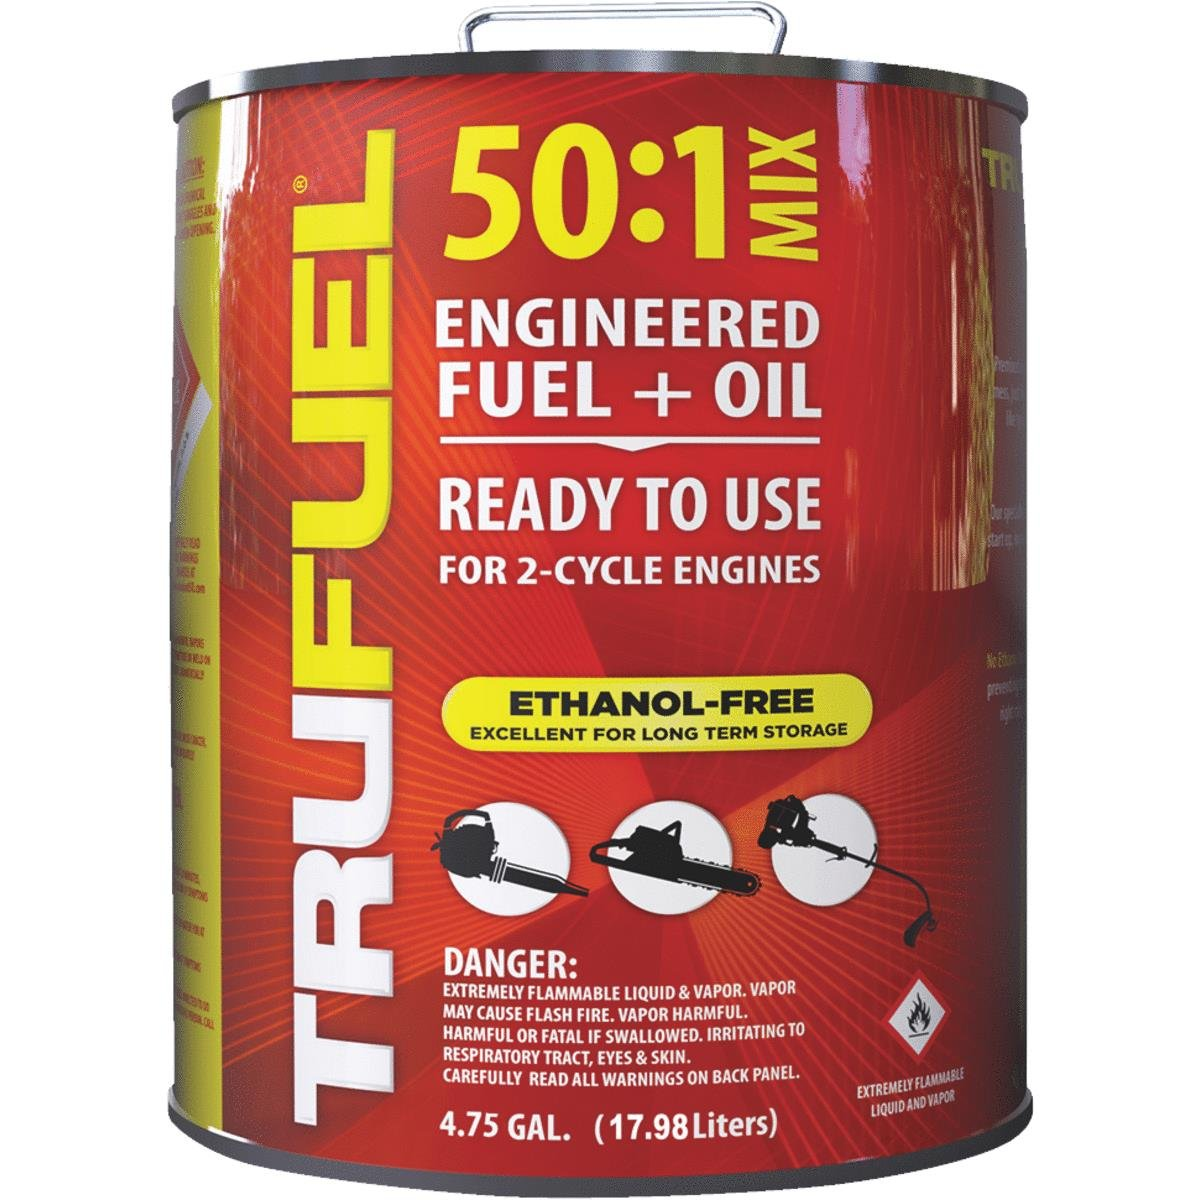 Arnold 4.75 GAL 50:1 Fuel/Oil